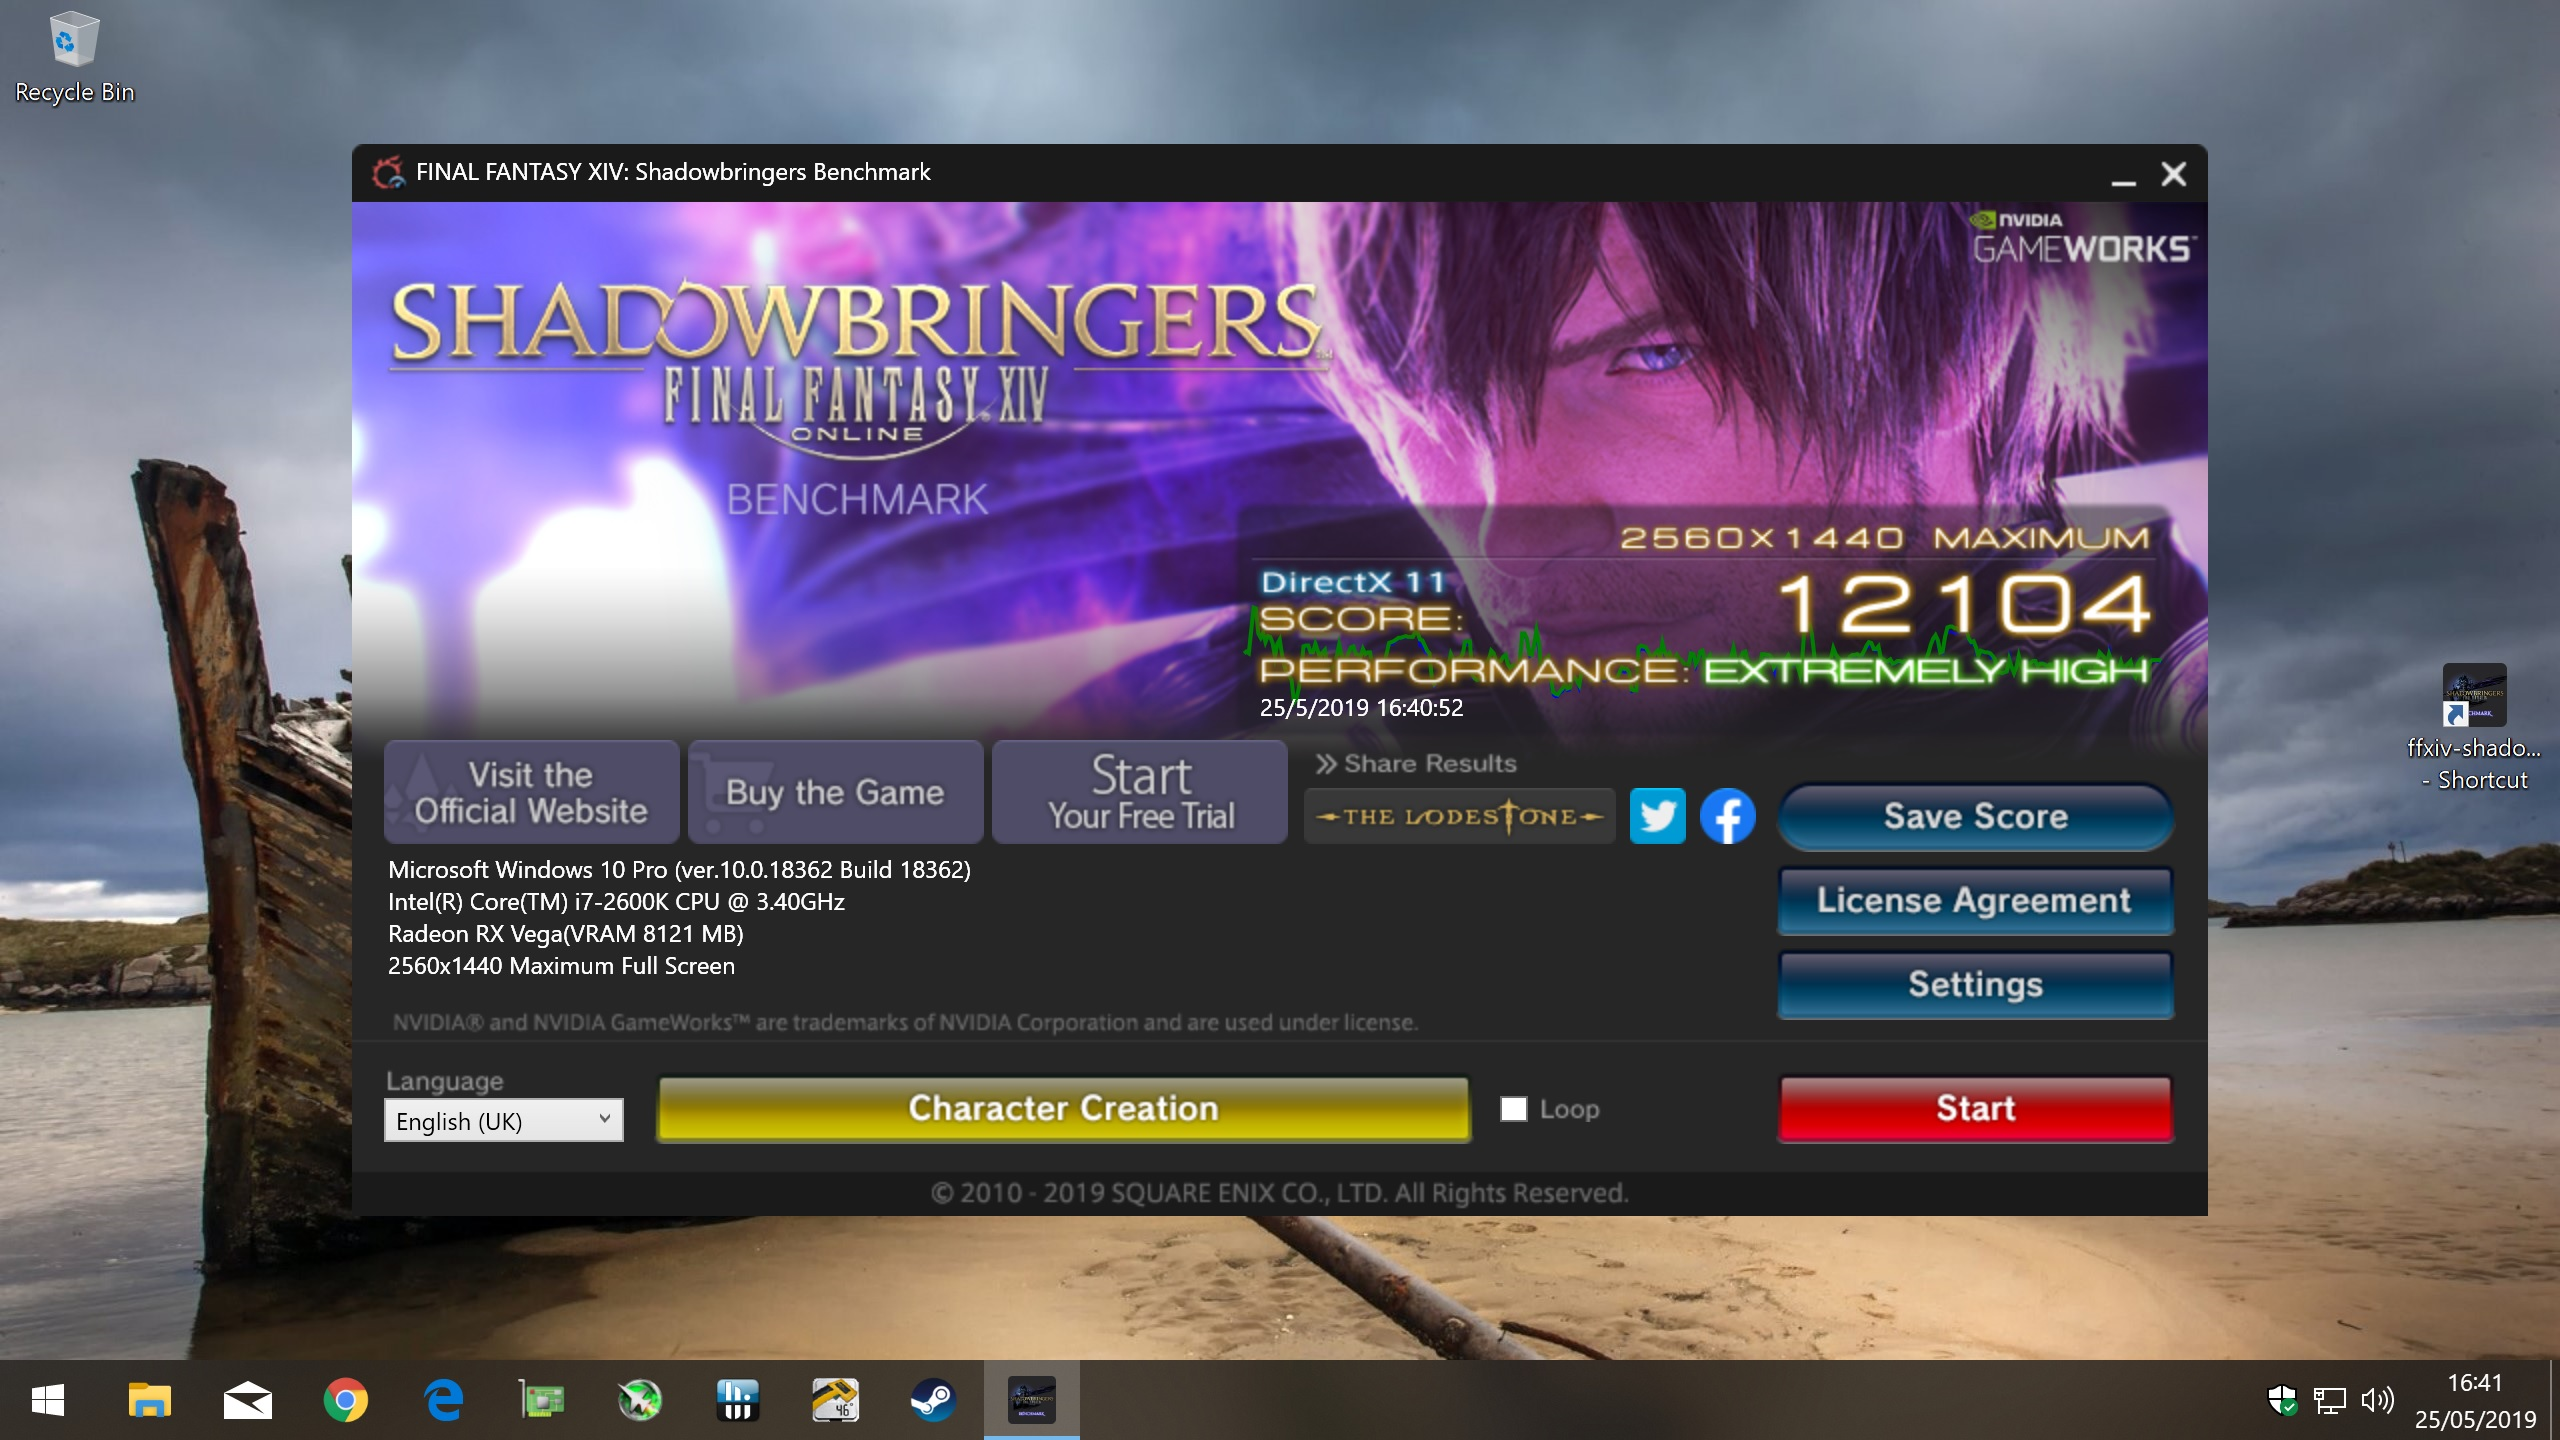 Final Fantasy XIV Shadowbringers Benchmark Download